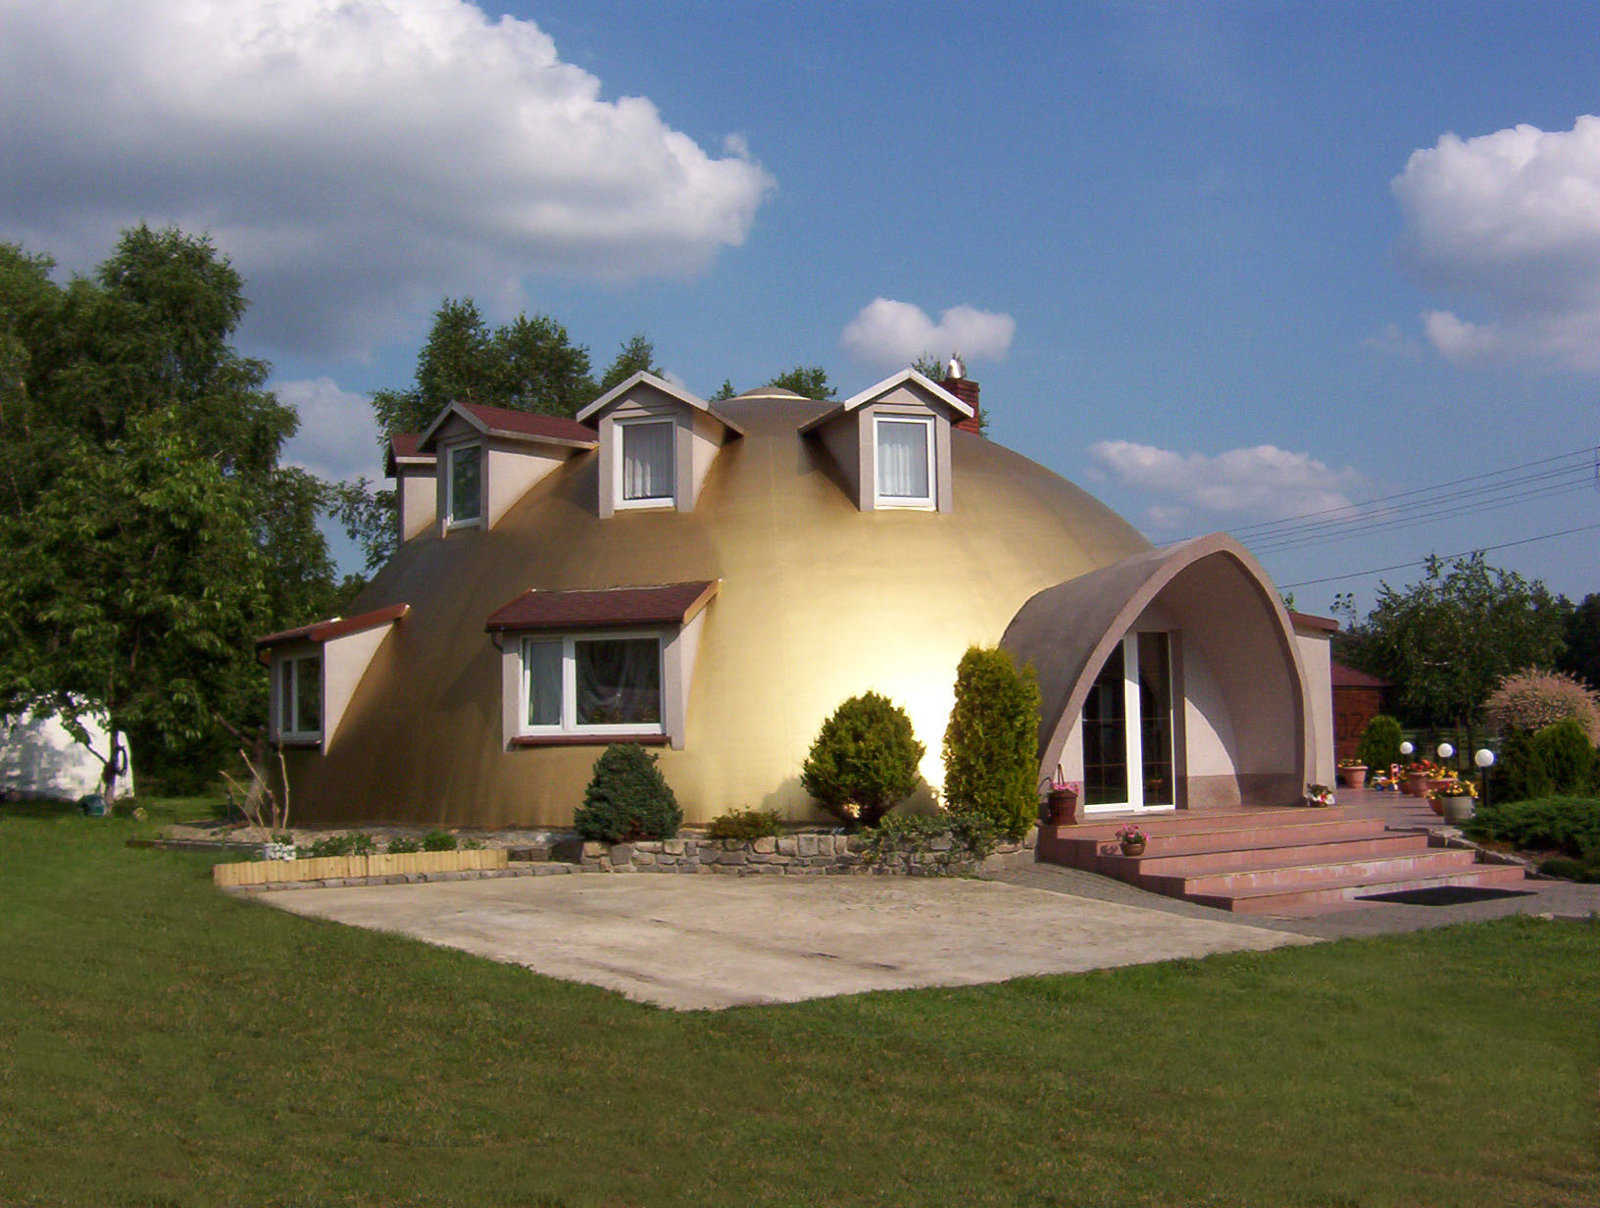 Polish Entrepreneur Builds His Monolithic Dome Dream Home